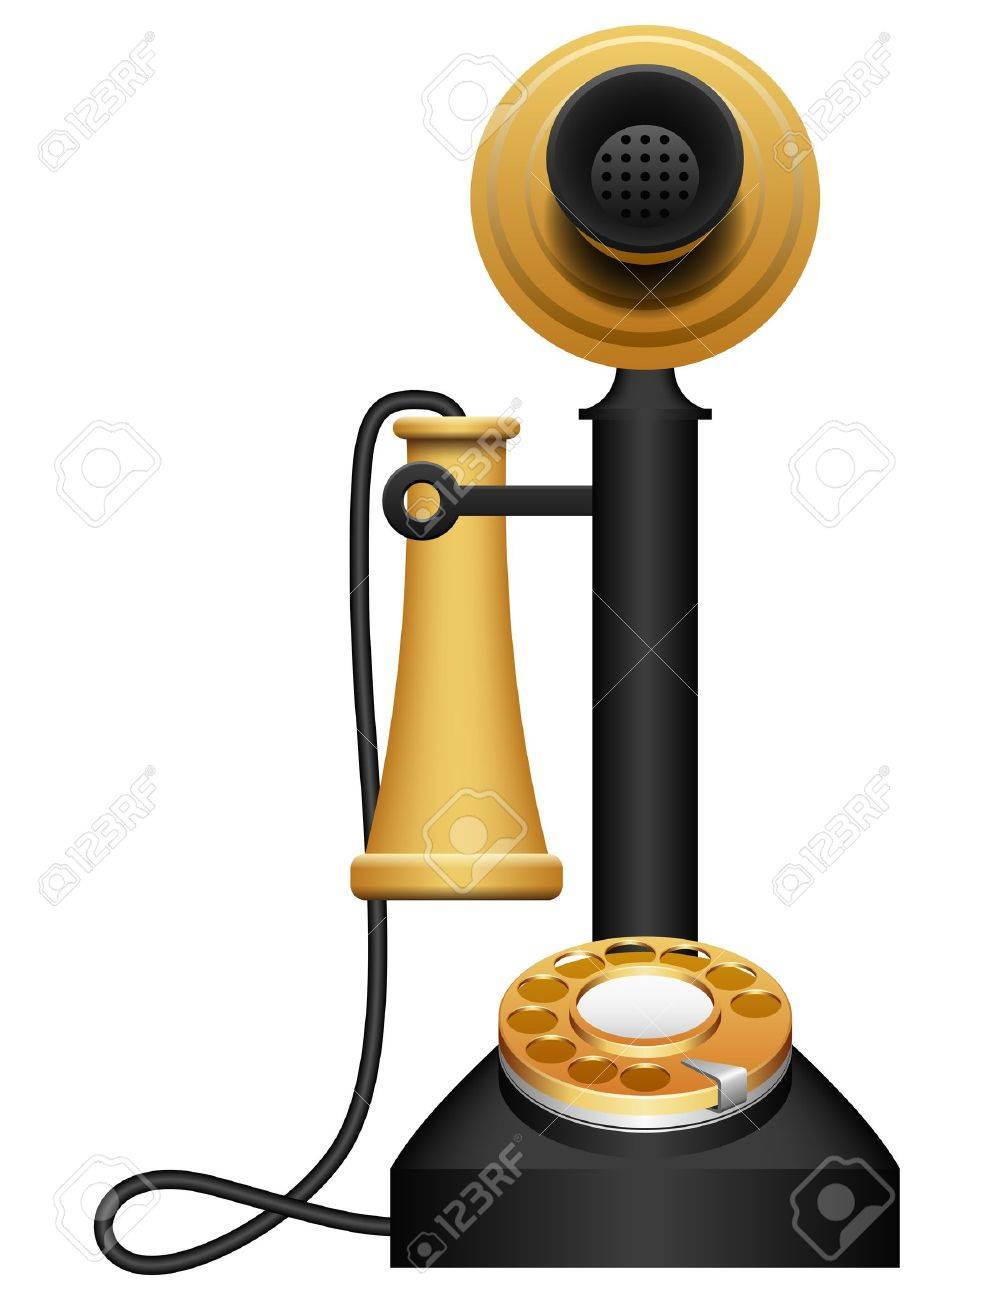 Layered vector illustration of Old Telephone. - 9929978